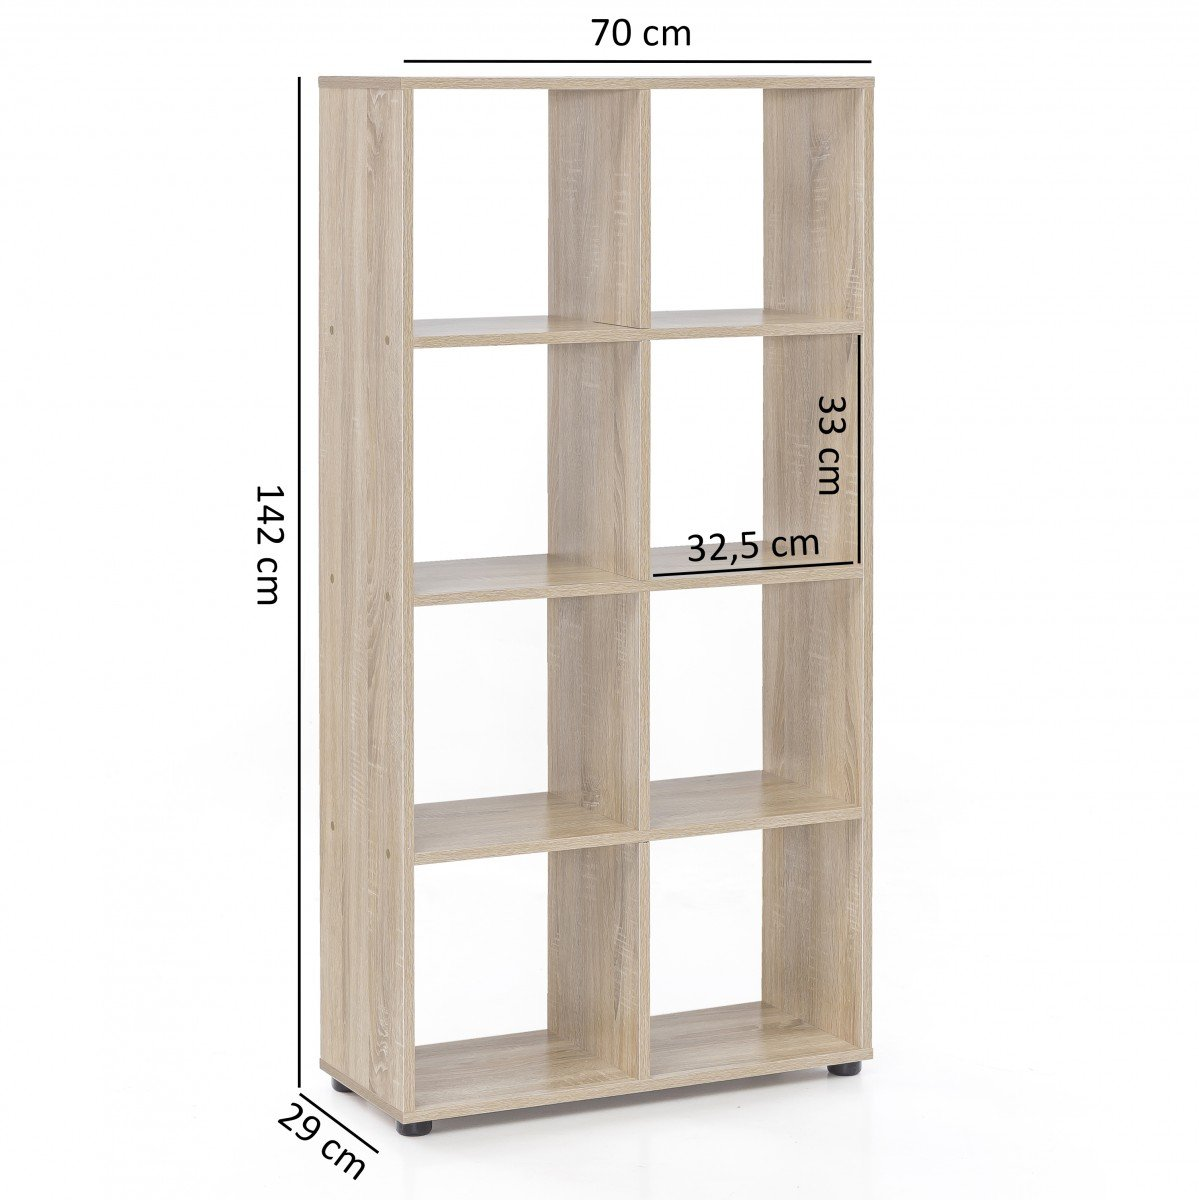 FineBuy Design Bücherregal Sara Sara Sara mit 16 Fächern Sonoma Eiche 138 x 142 x 29 cm   Standregal Holz Regal freistehend   Ordnerregal Raumteiler Würfel-Regal modern   Offenes Aufbewahrungsregal 089566